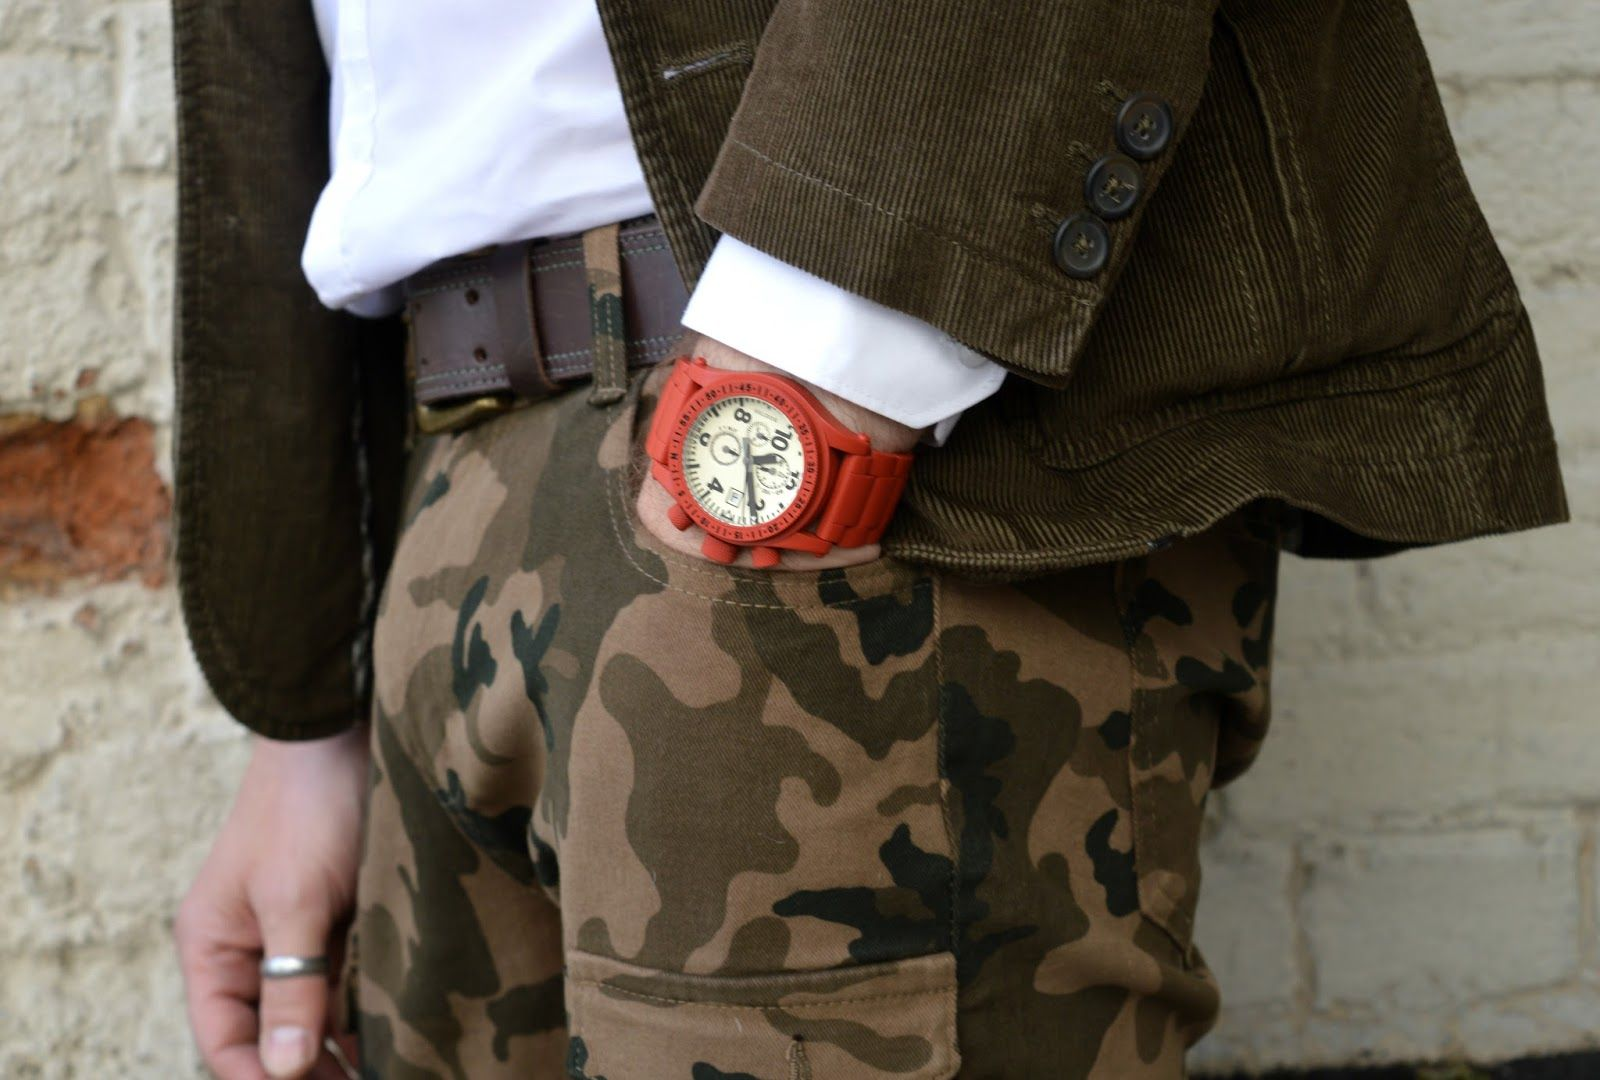 Product Review - The Bulldog Watch